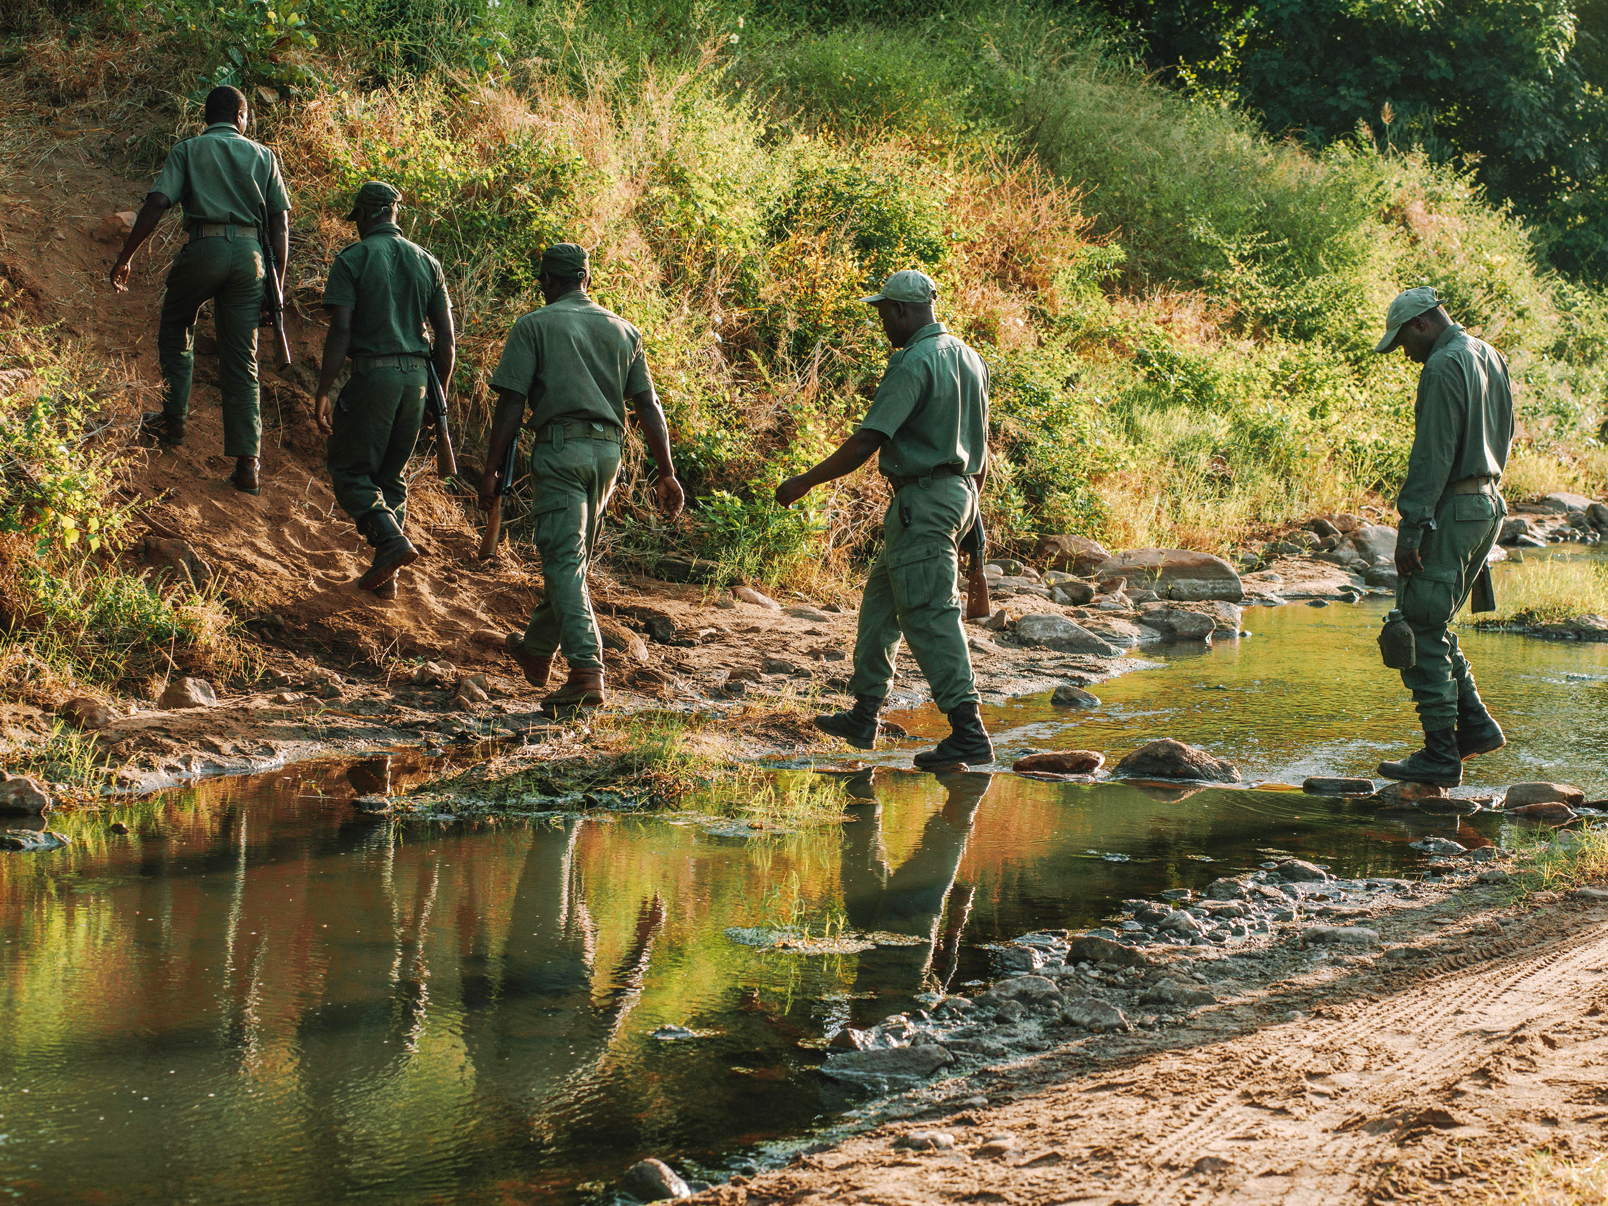 Park rangers crossing river.jpg